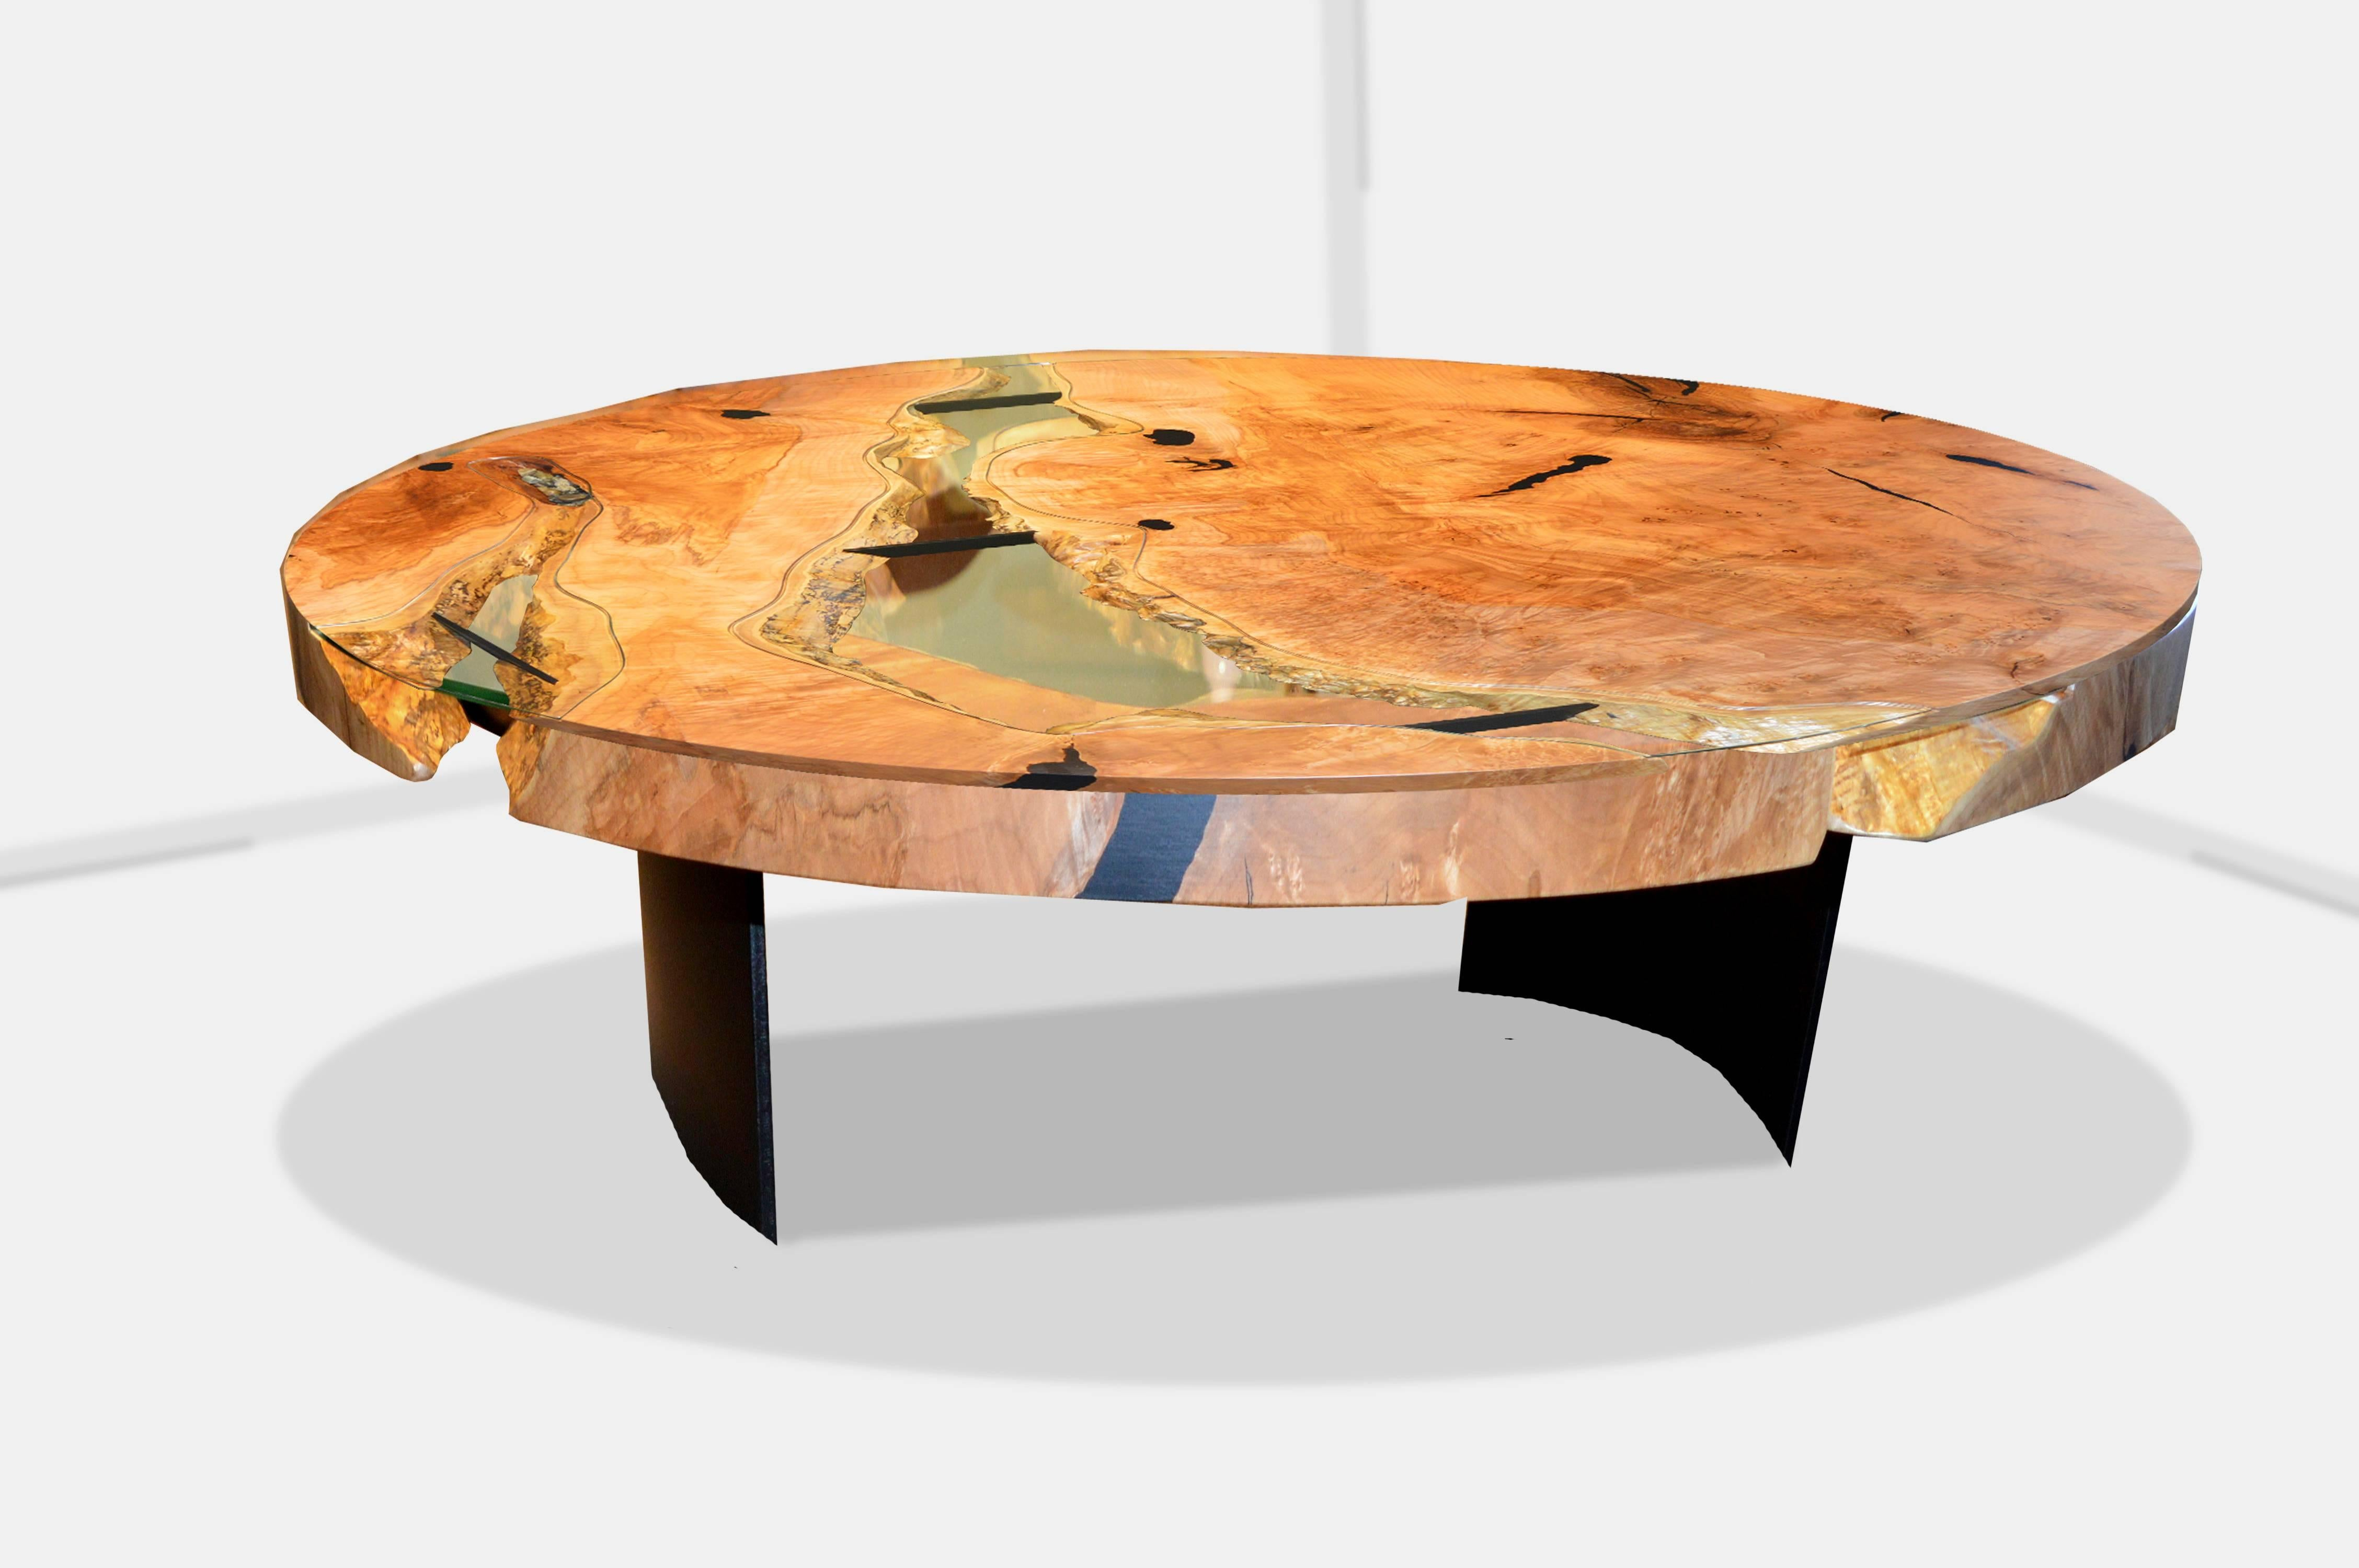 River Coffee Table In Live Edge Maple With Curved Steel Base Black For At 1stdibs